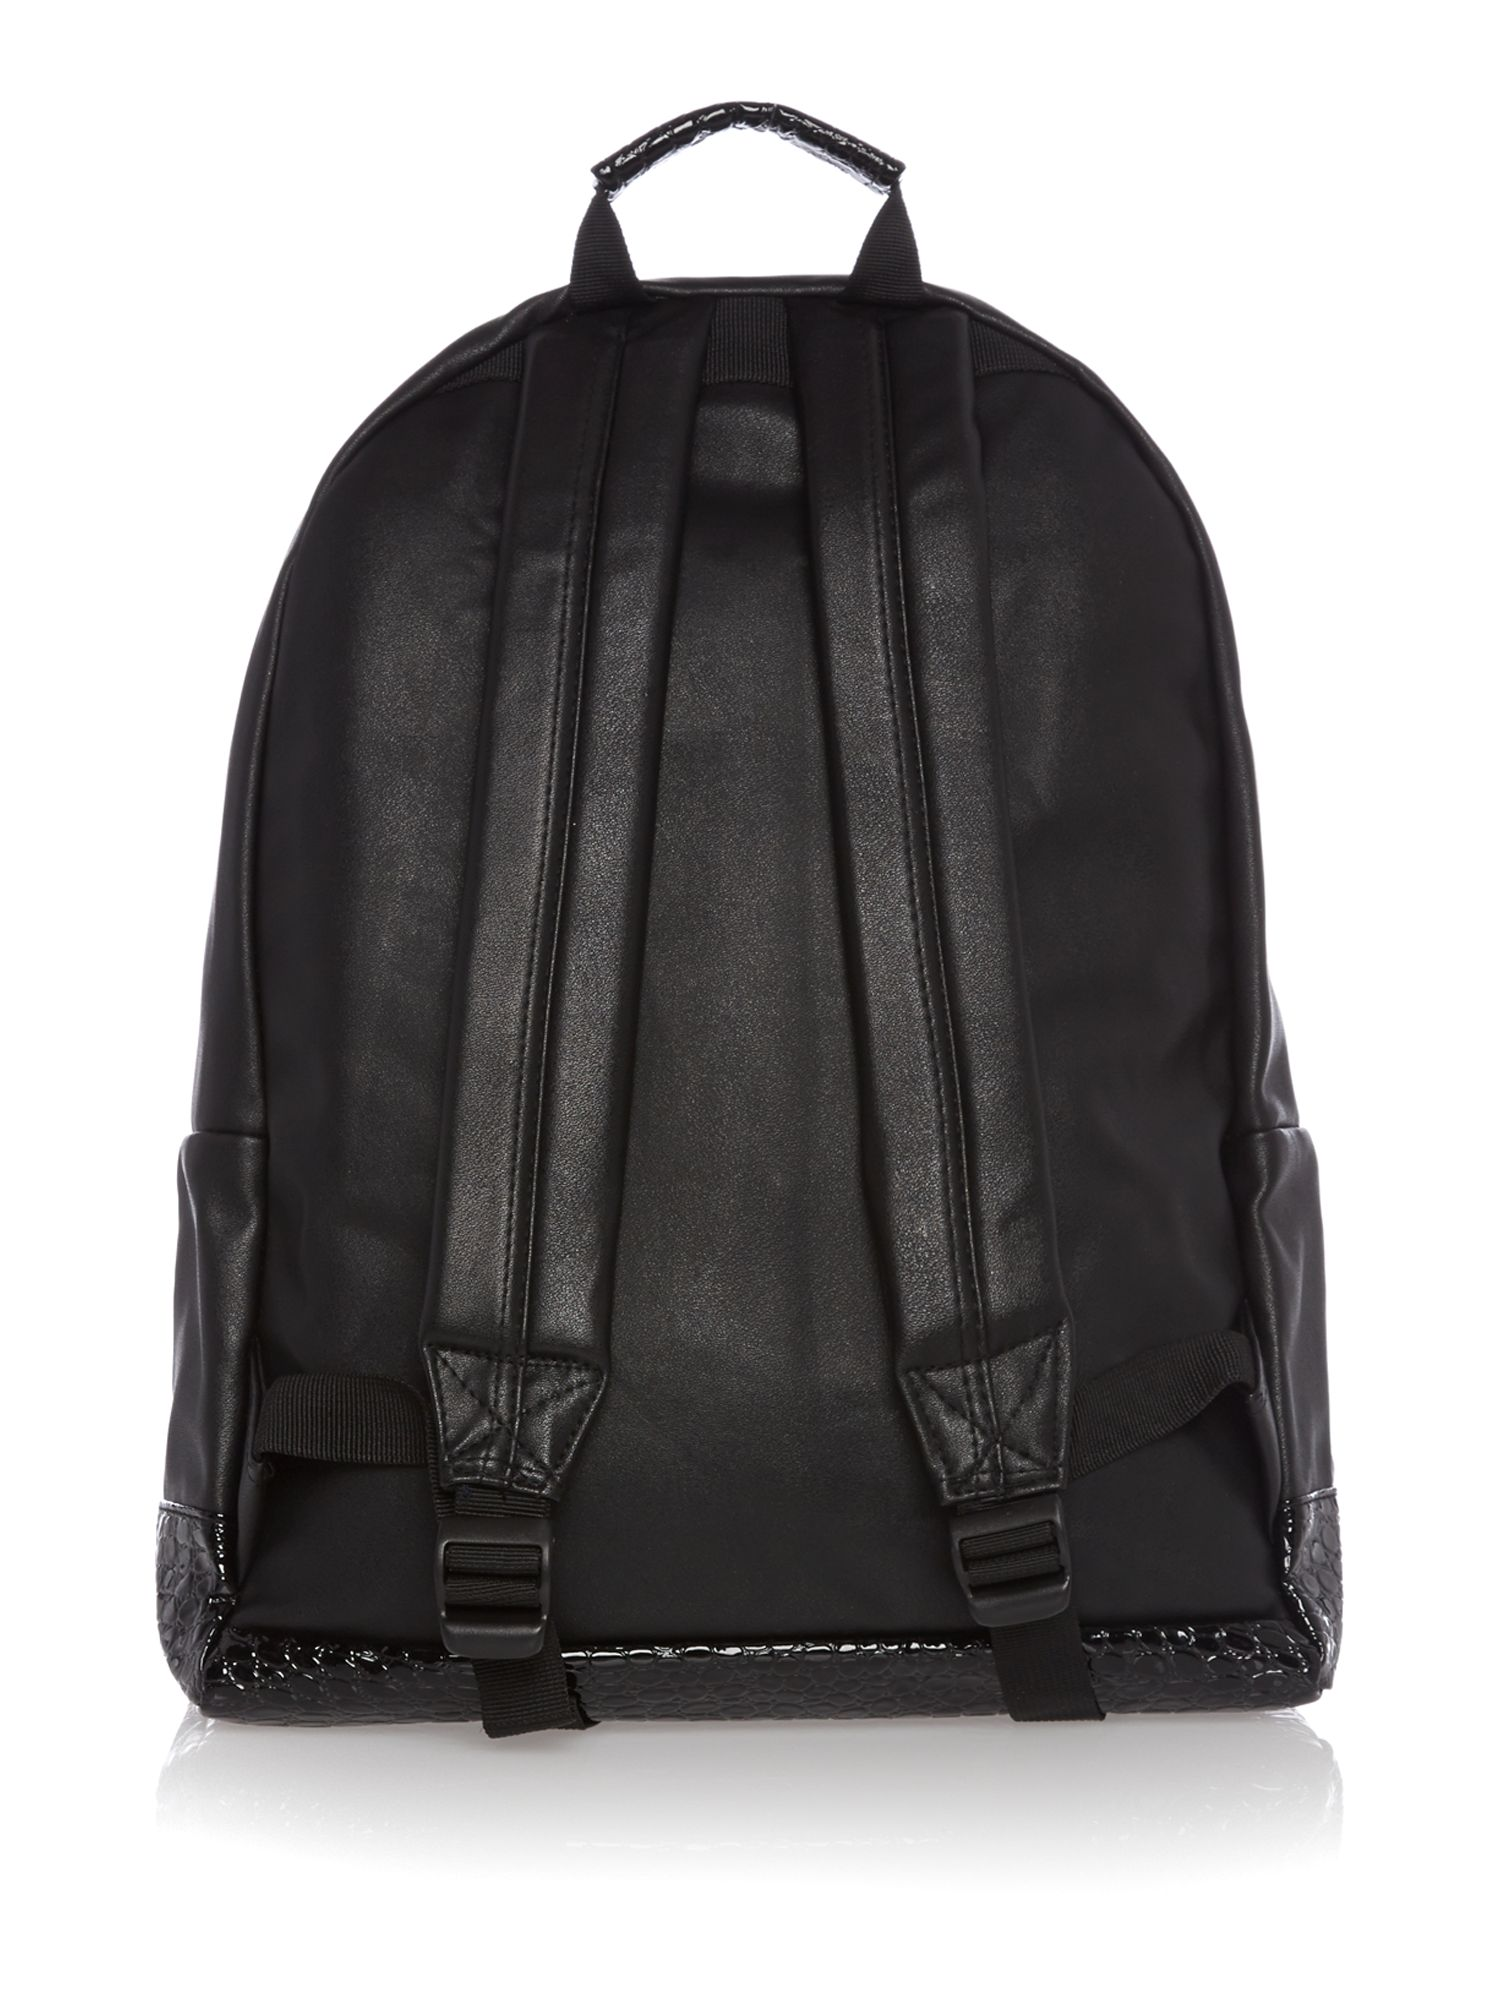 Premium faux croc leather backpack